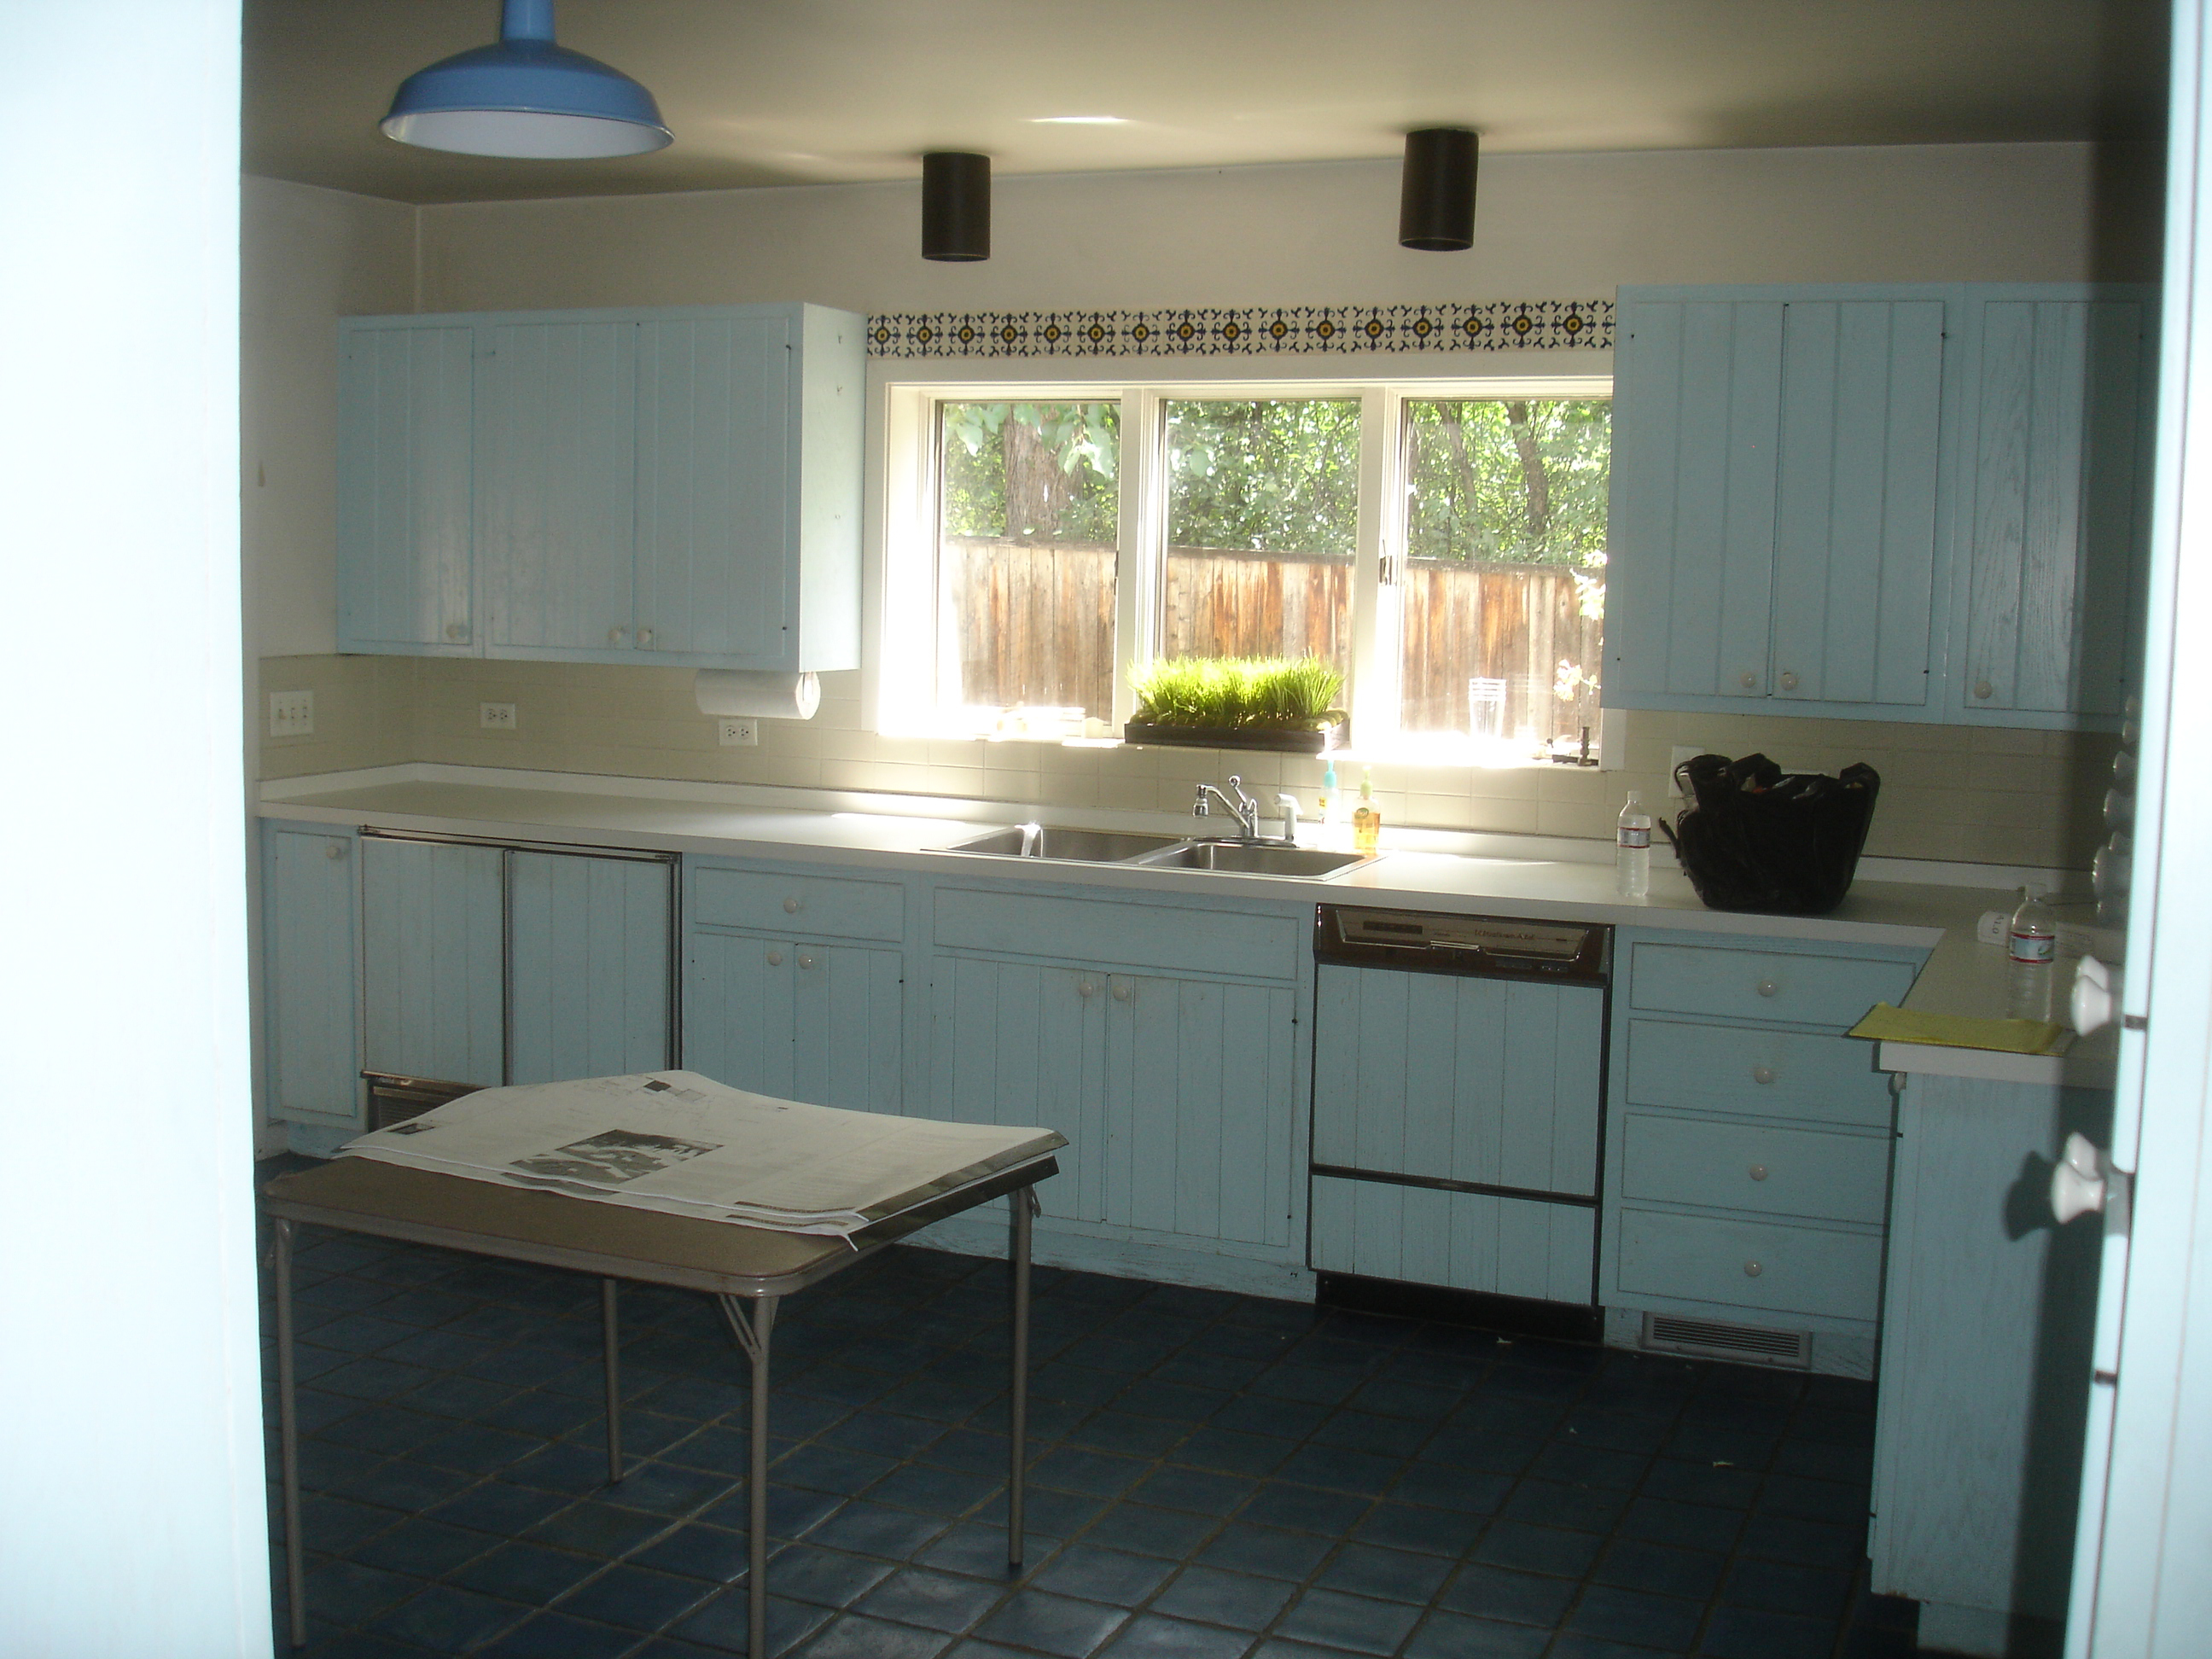 Recessed Lighting Layout Kitchen Recessed Lighting Best Practices Pro Remodeler